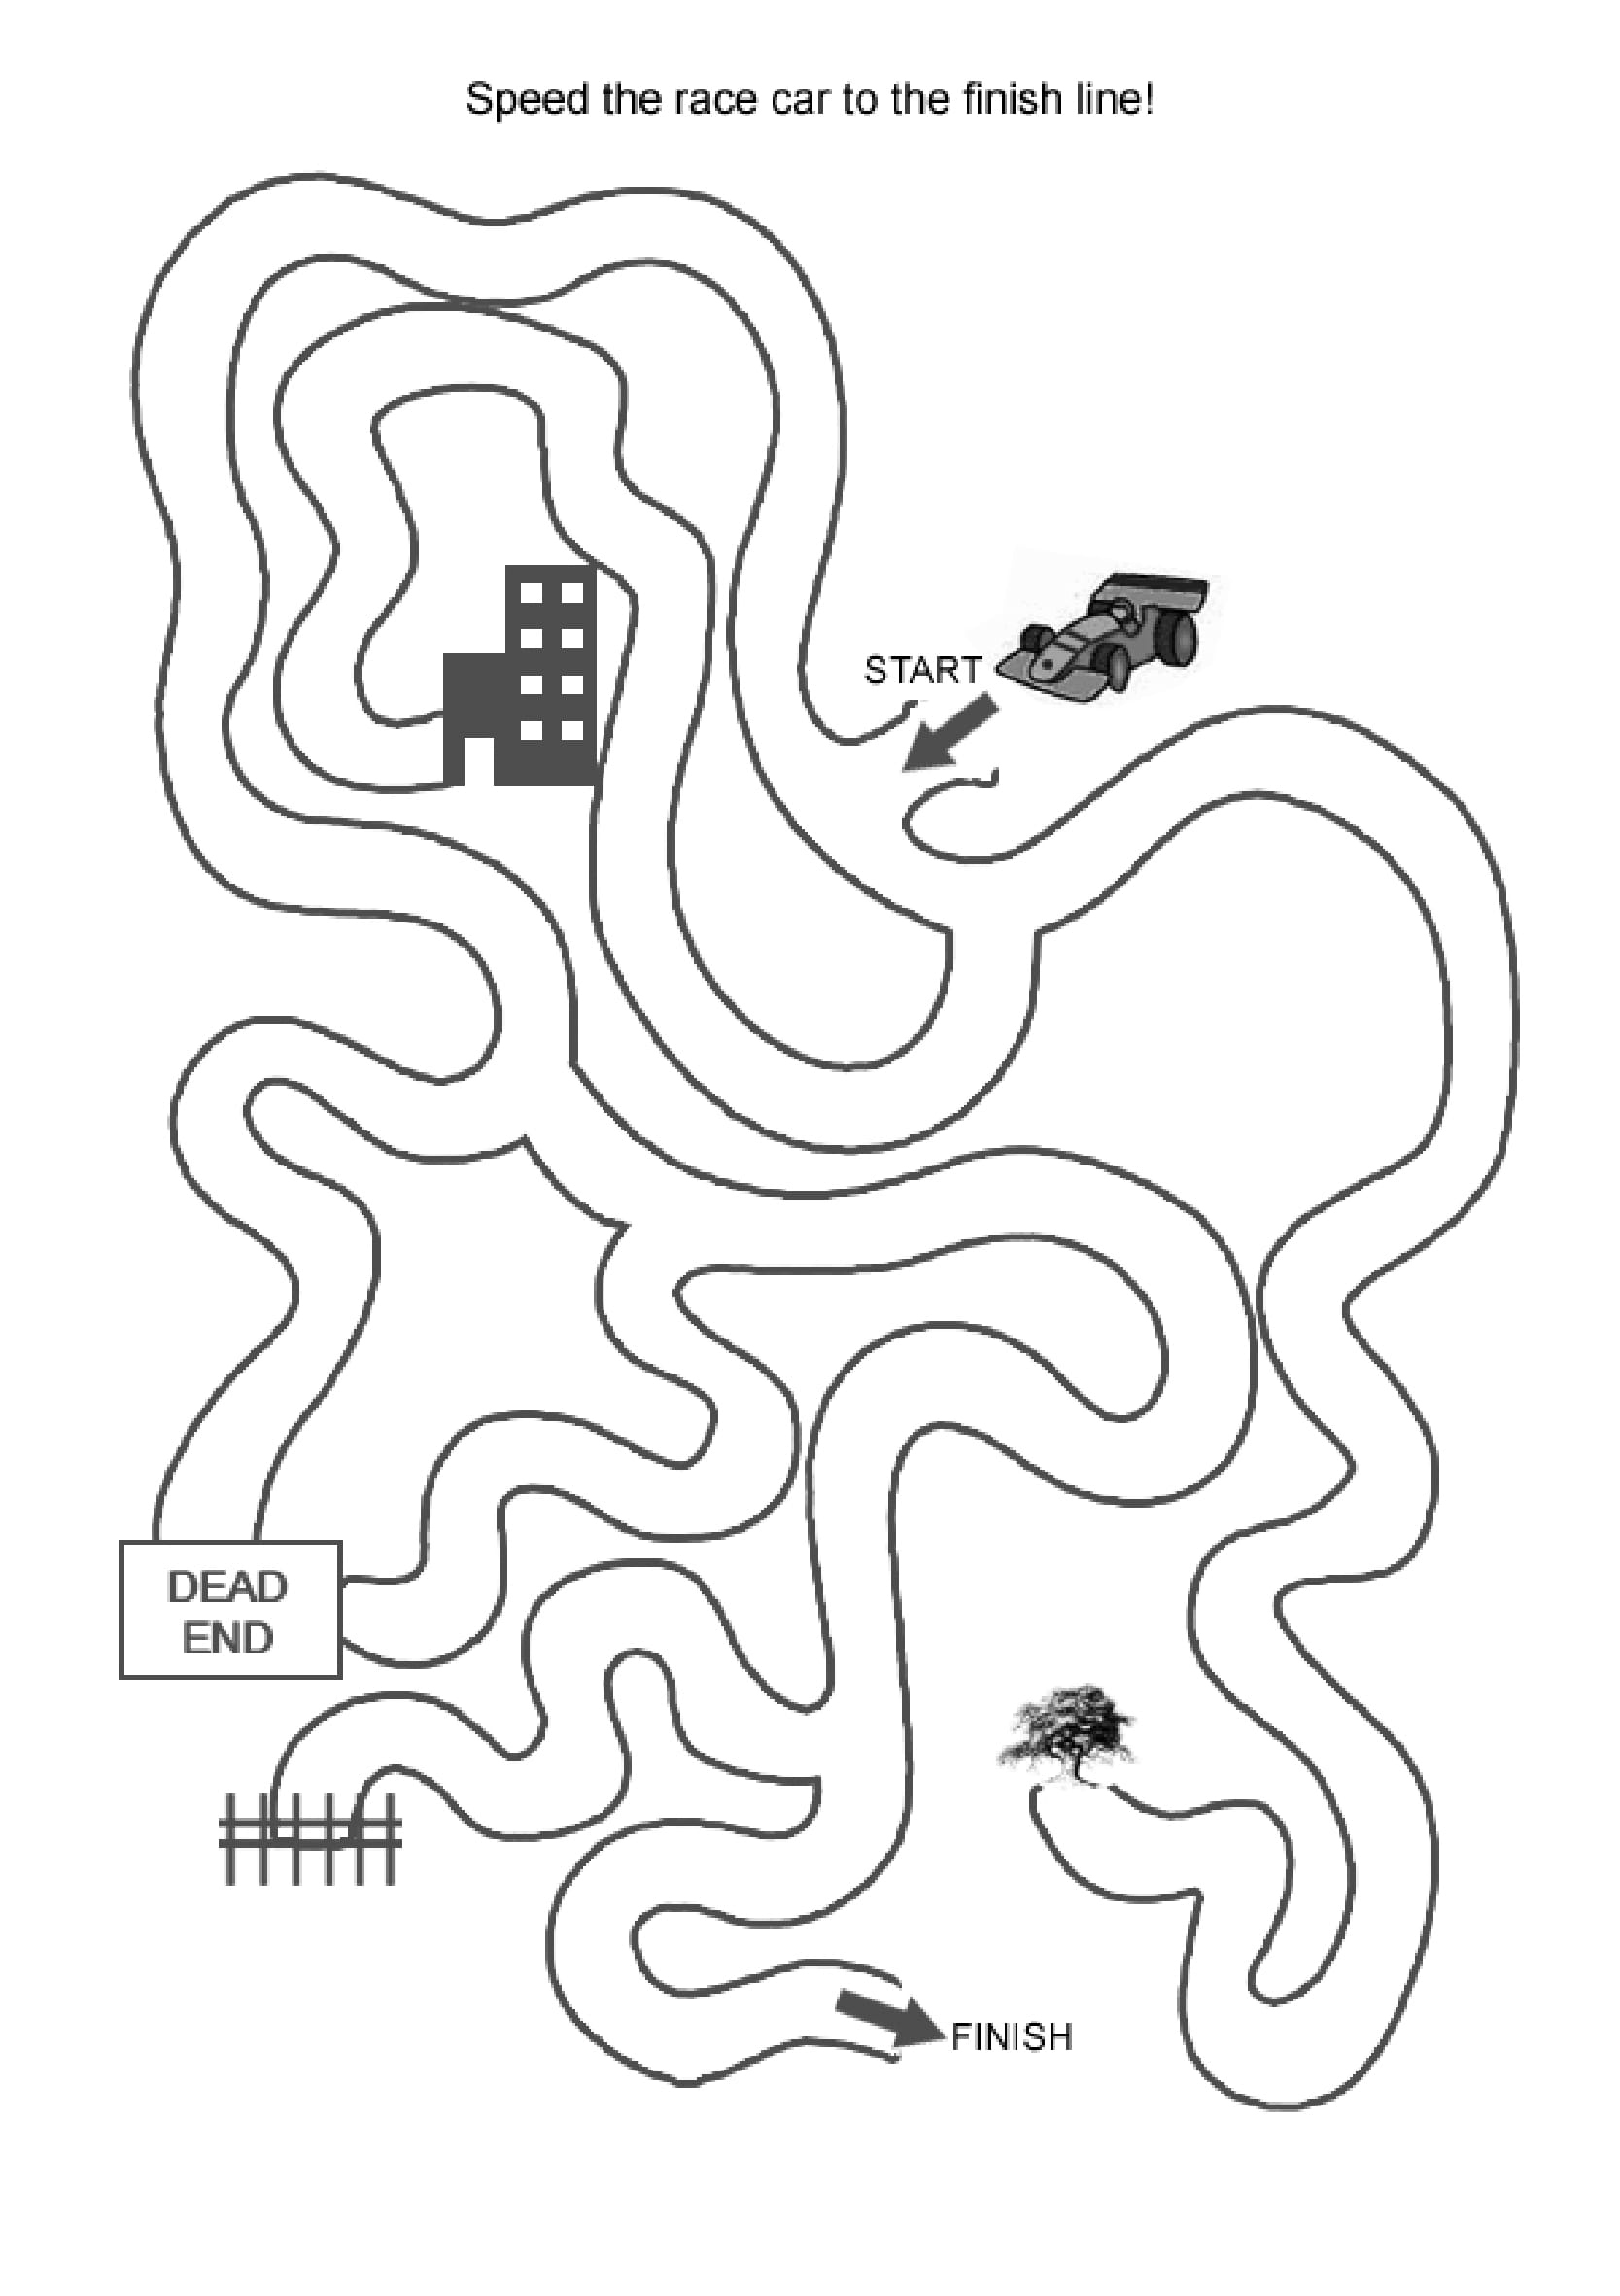 Easy Mazes Printable Mazes for